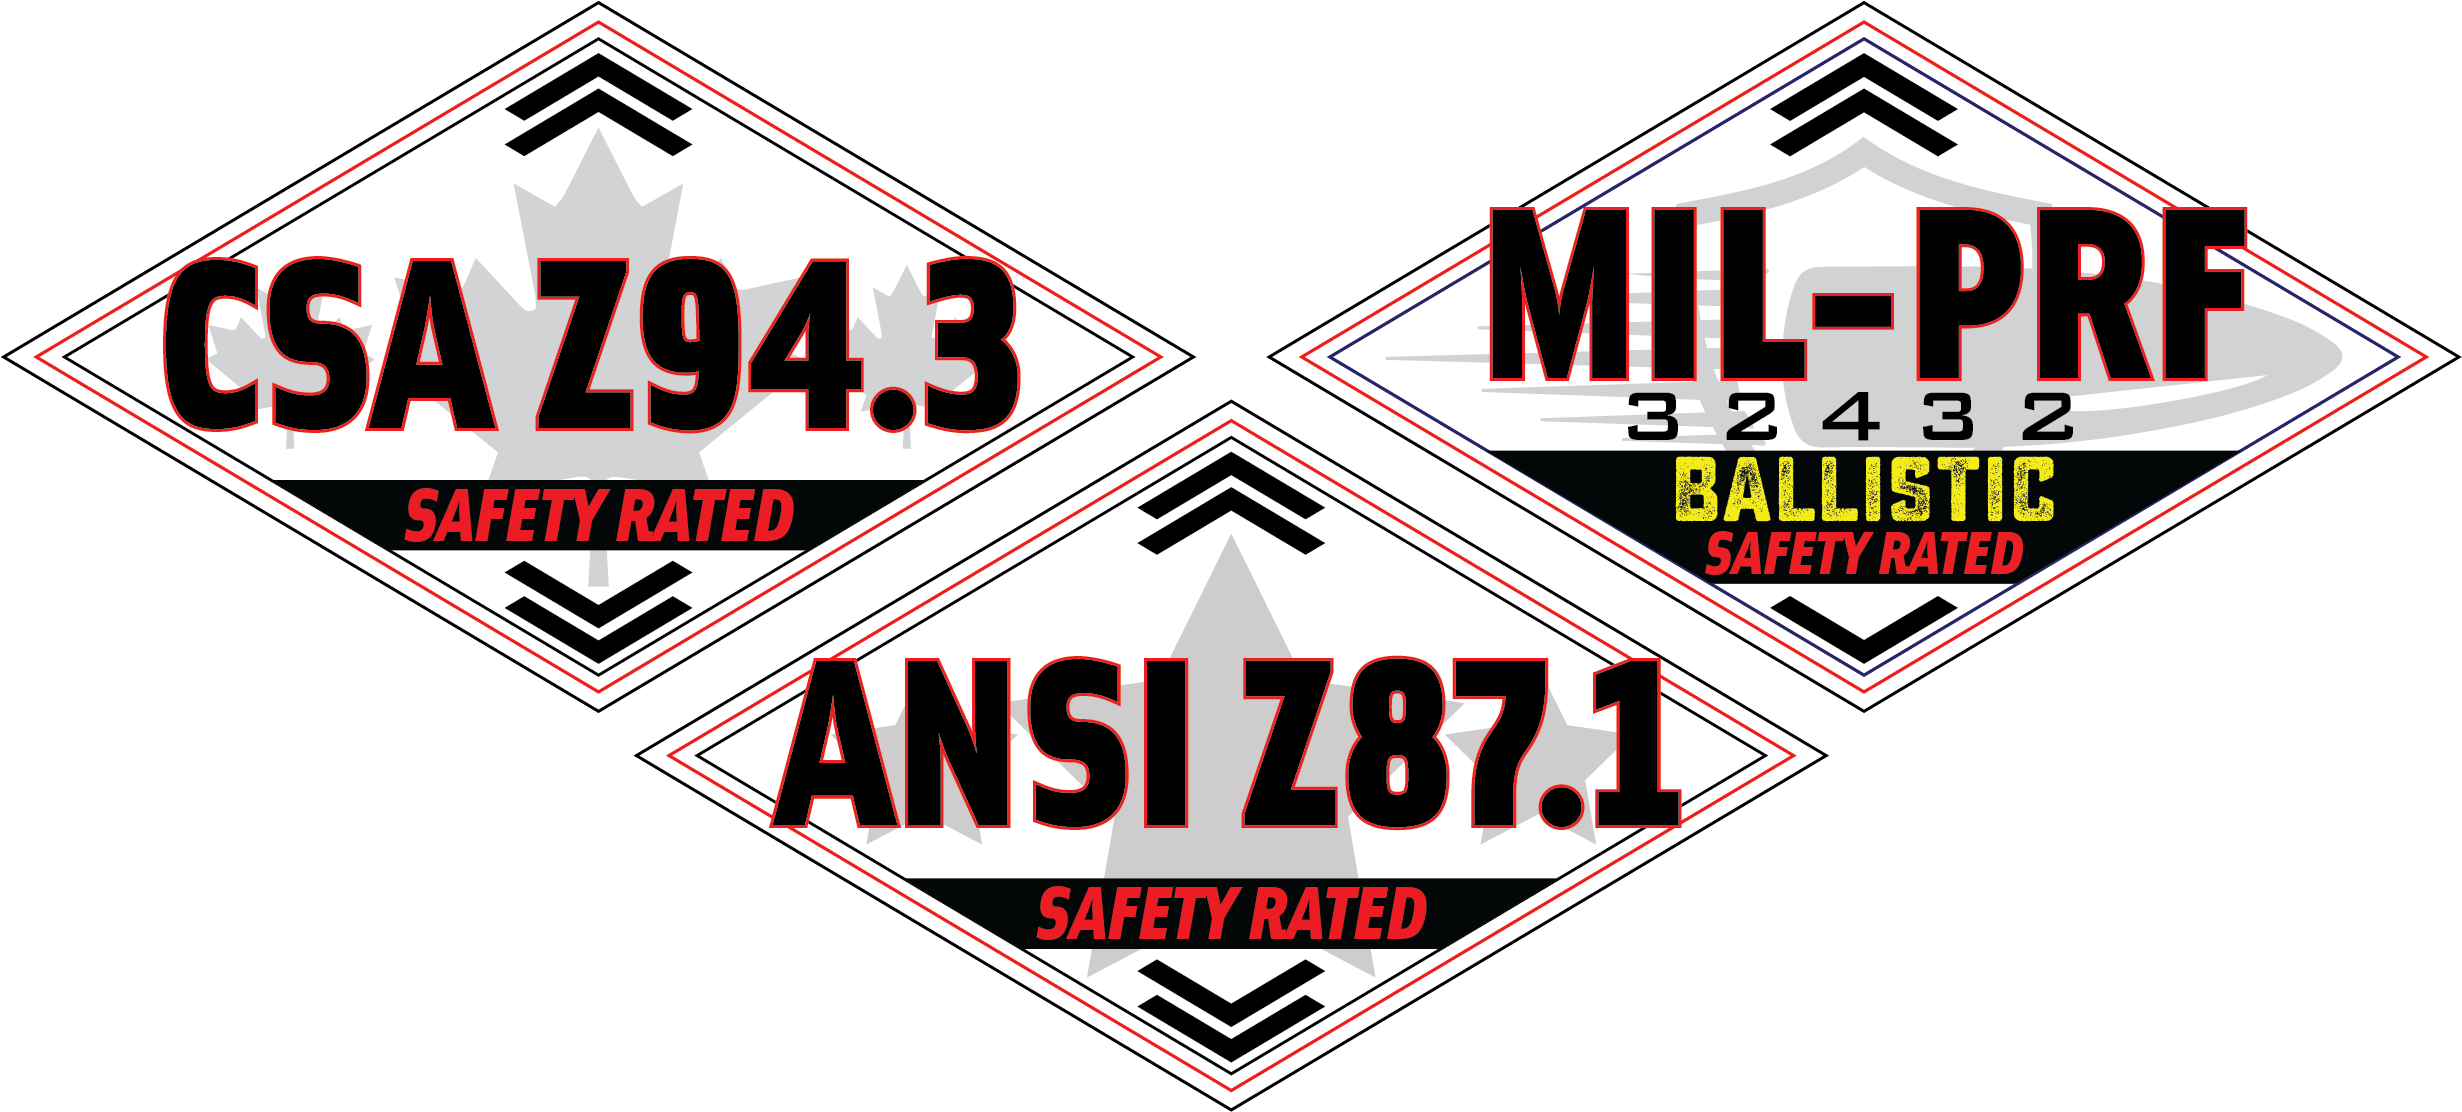 Safety standard compliance badges